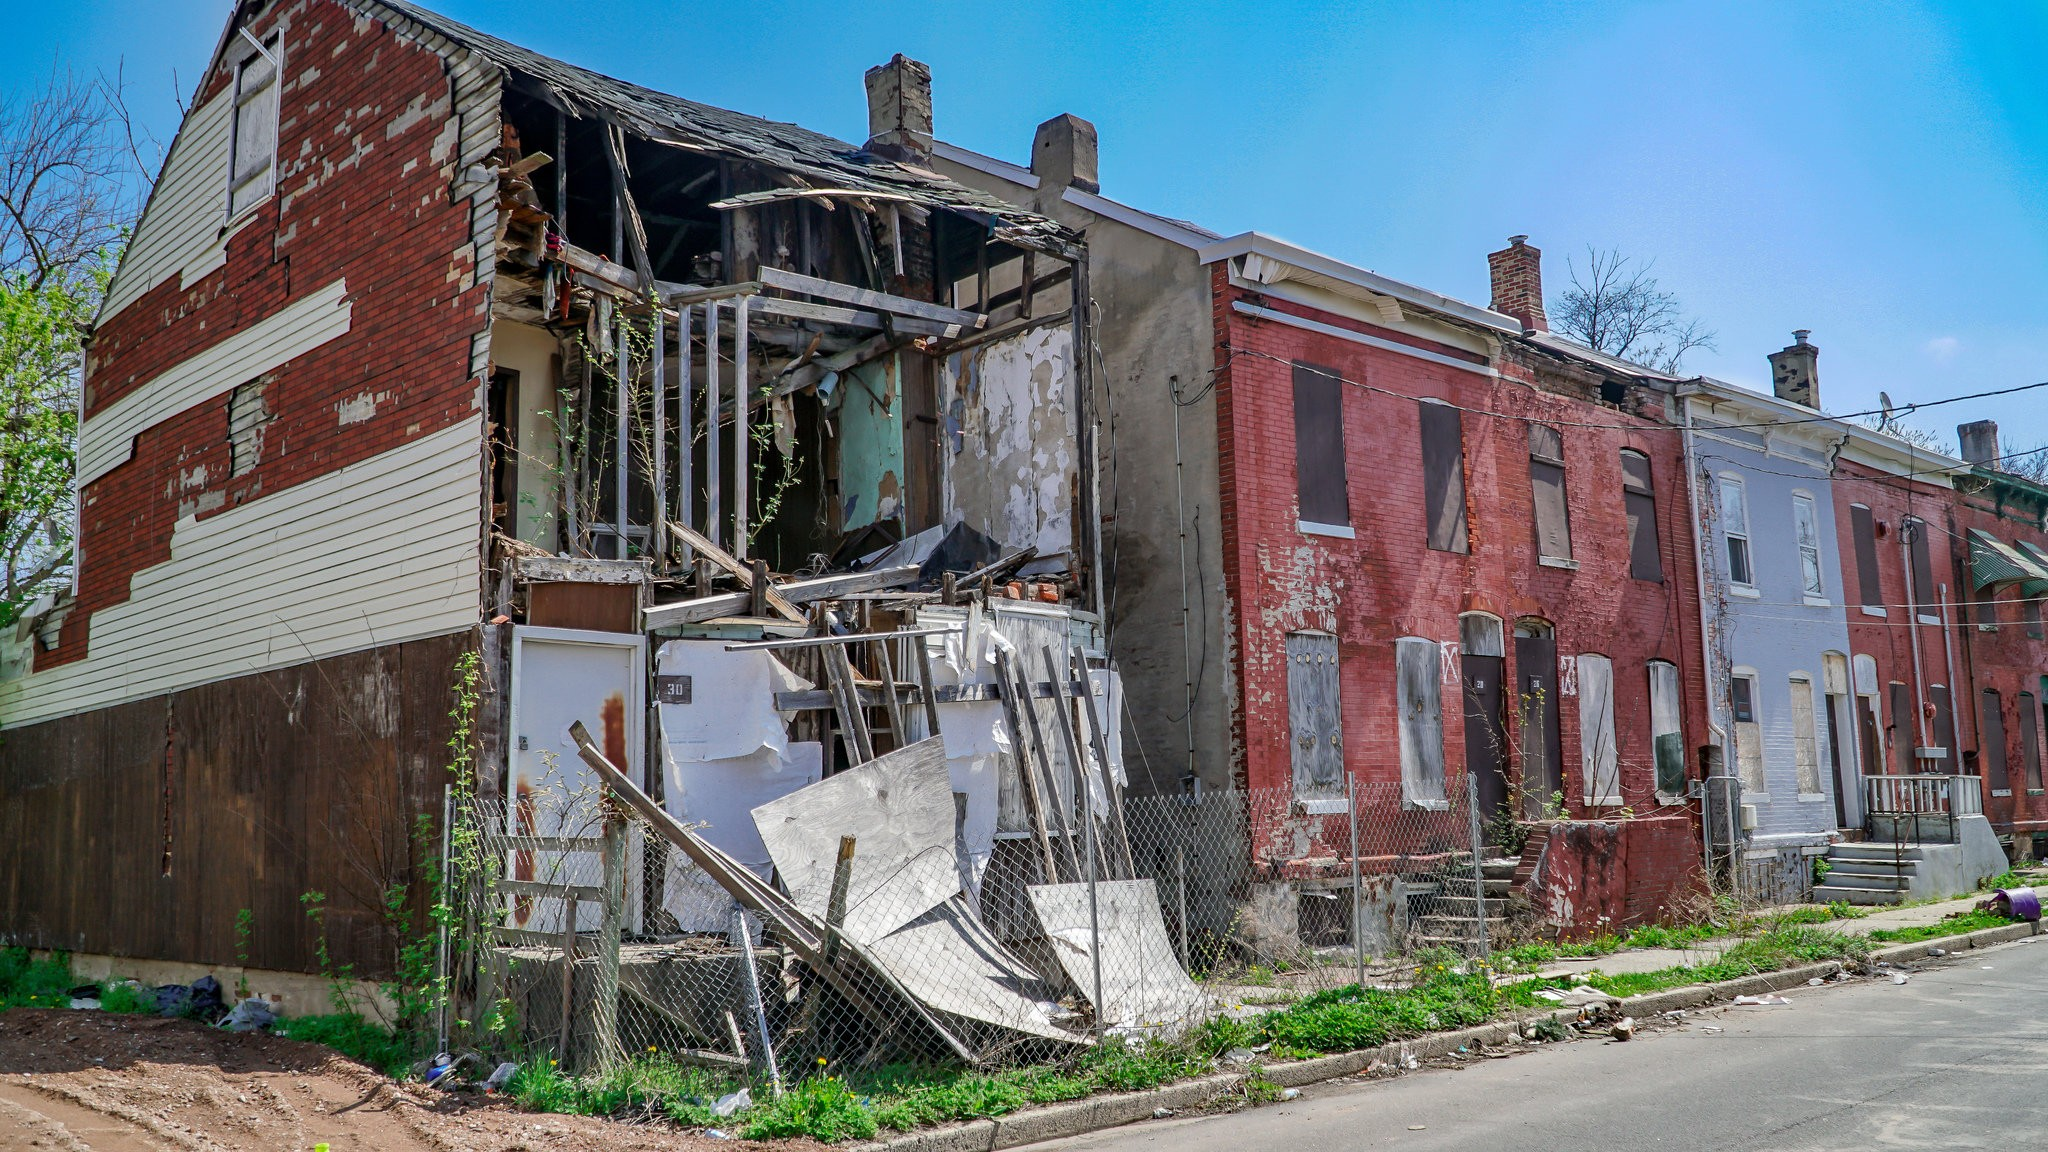 Demolishing Abandoned Houses Does Not Reduce Nearby Crime